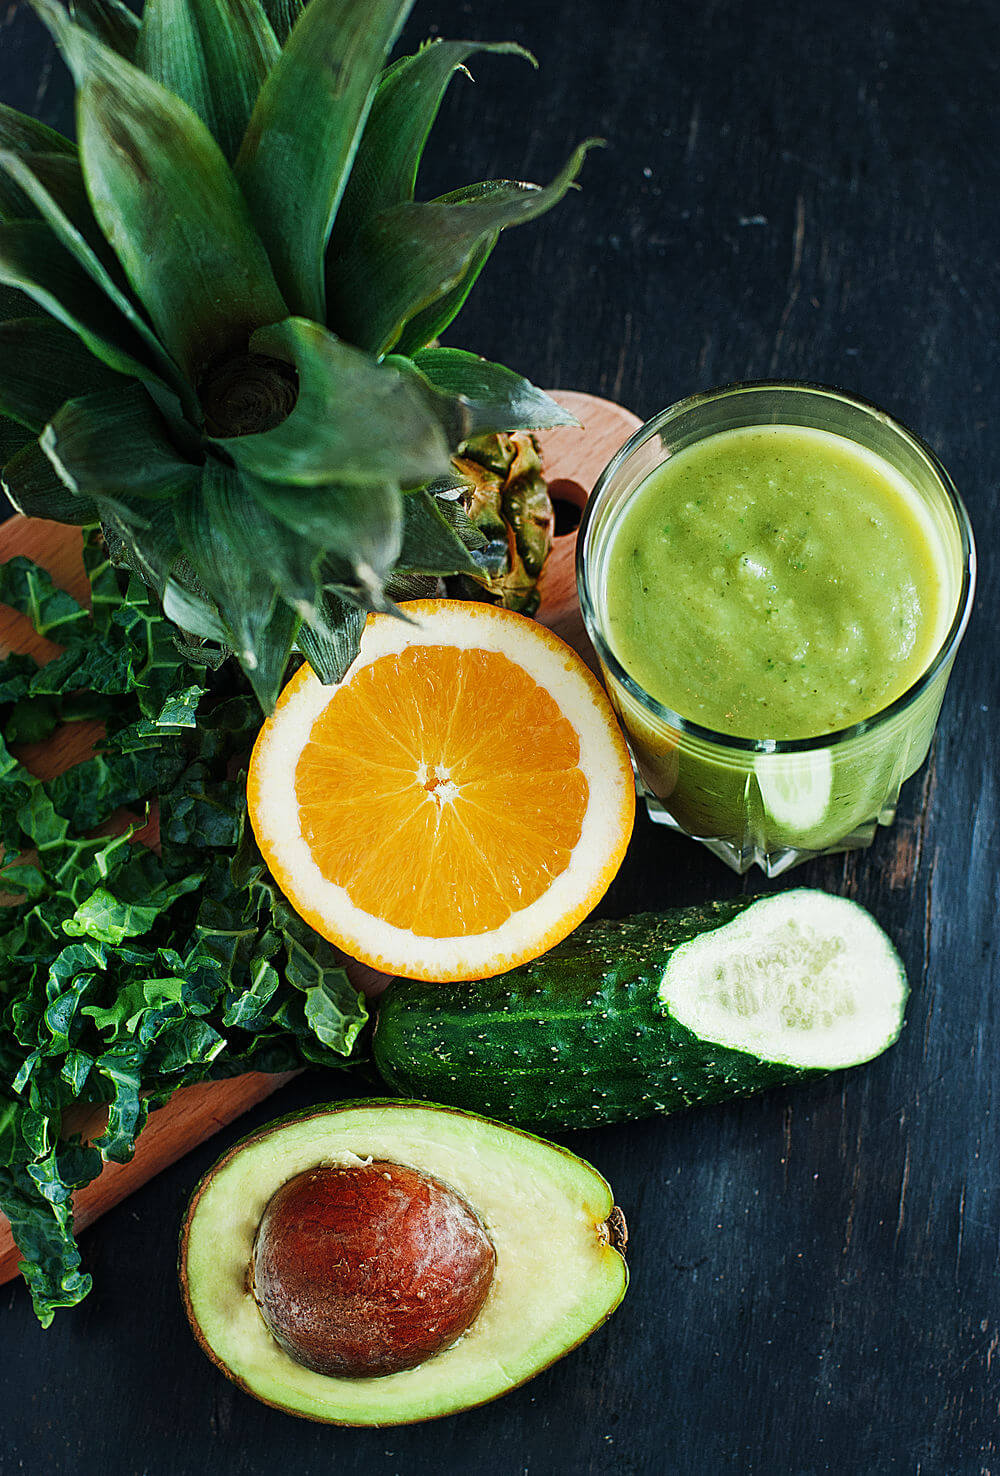 Coconut water, cucumber, pineapple, kale, orange and avocado smoothie